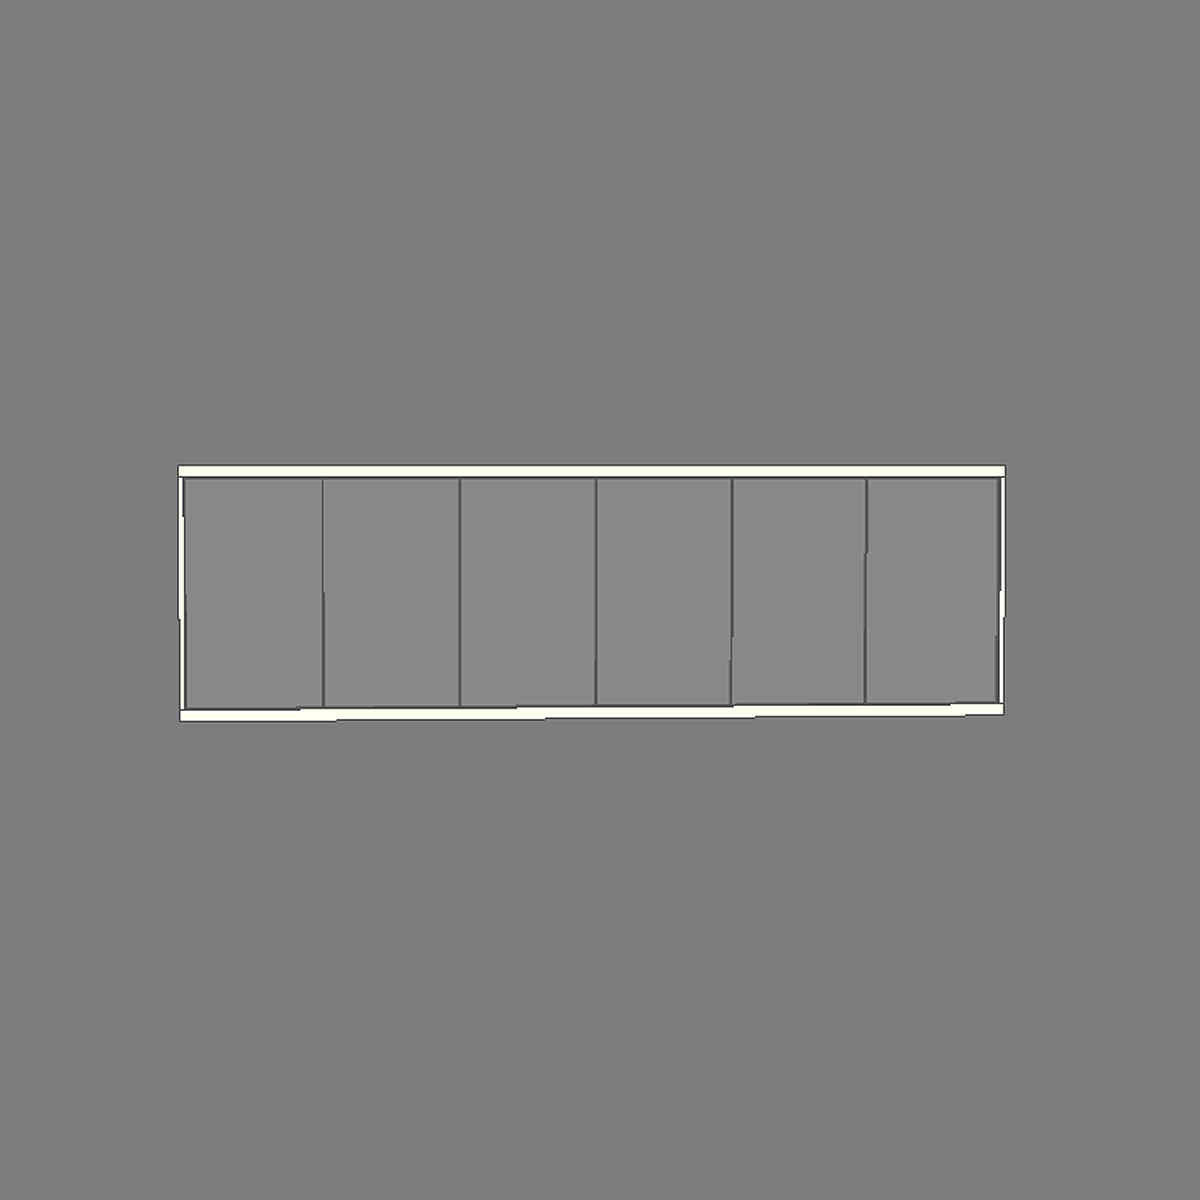 Window free 3d model max obj 3ds fbx c4d ma mb for Window 3d model